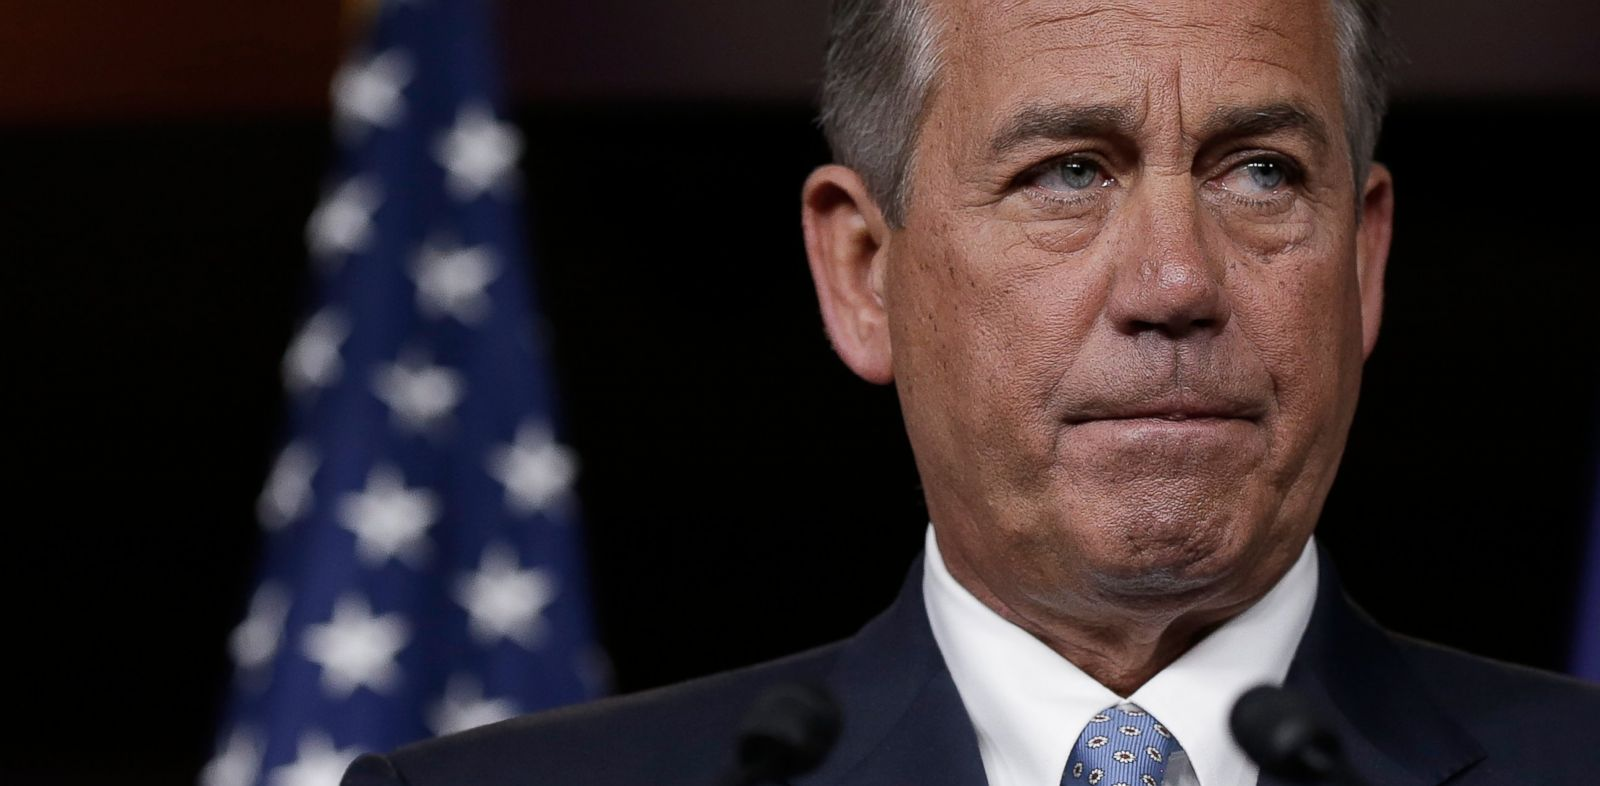 PHOTO: Speaker of the House John Boehner answers questions during a press conference at the U.S. Capitol November 21, 2013 in Washington, DC.